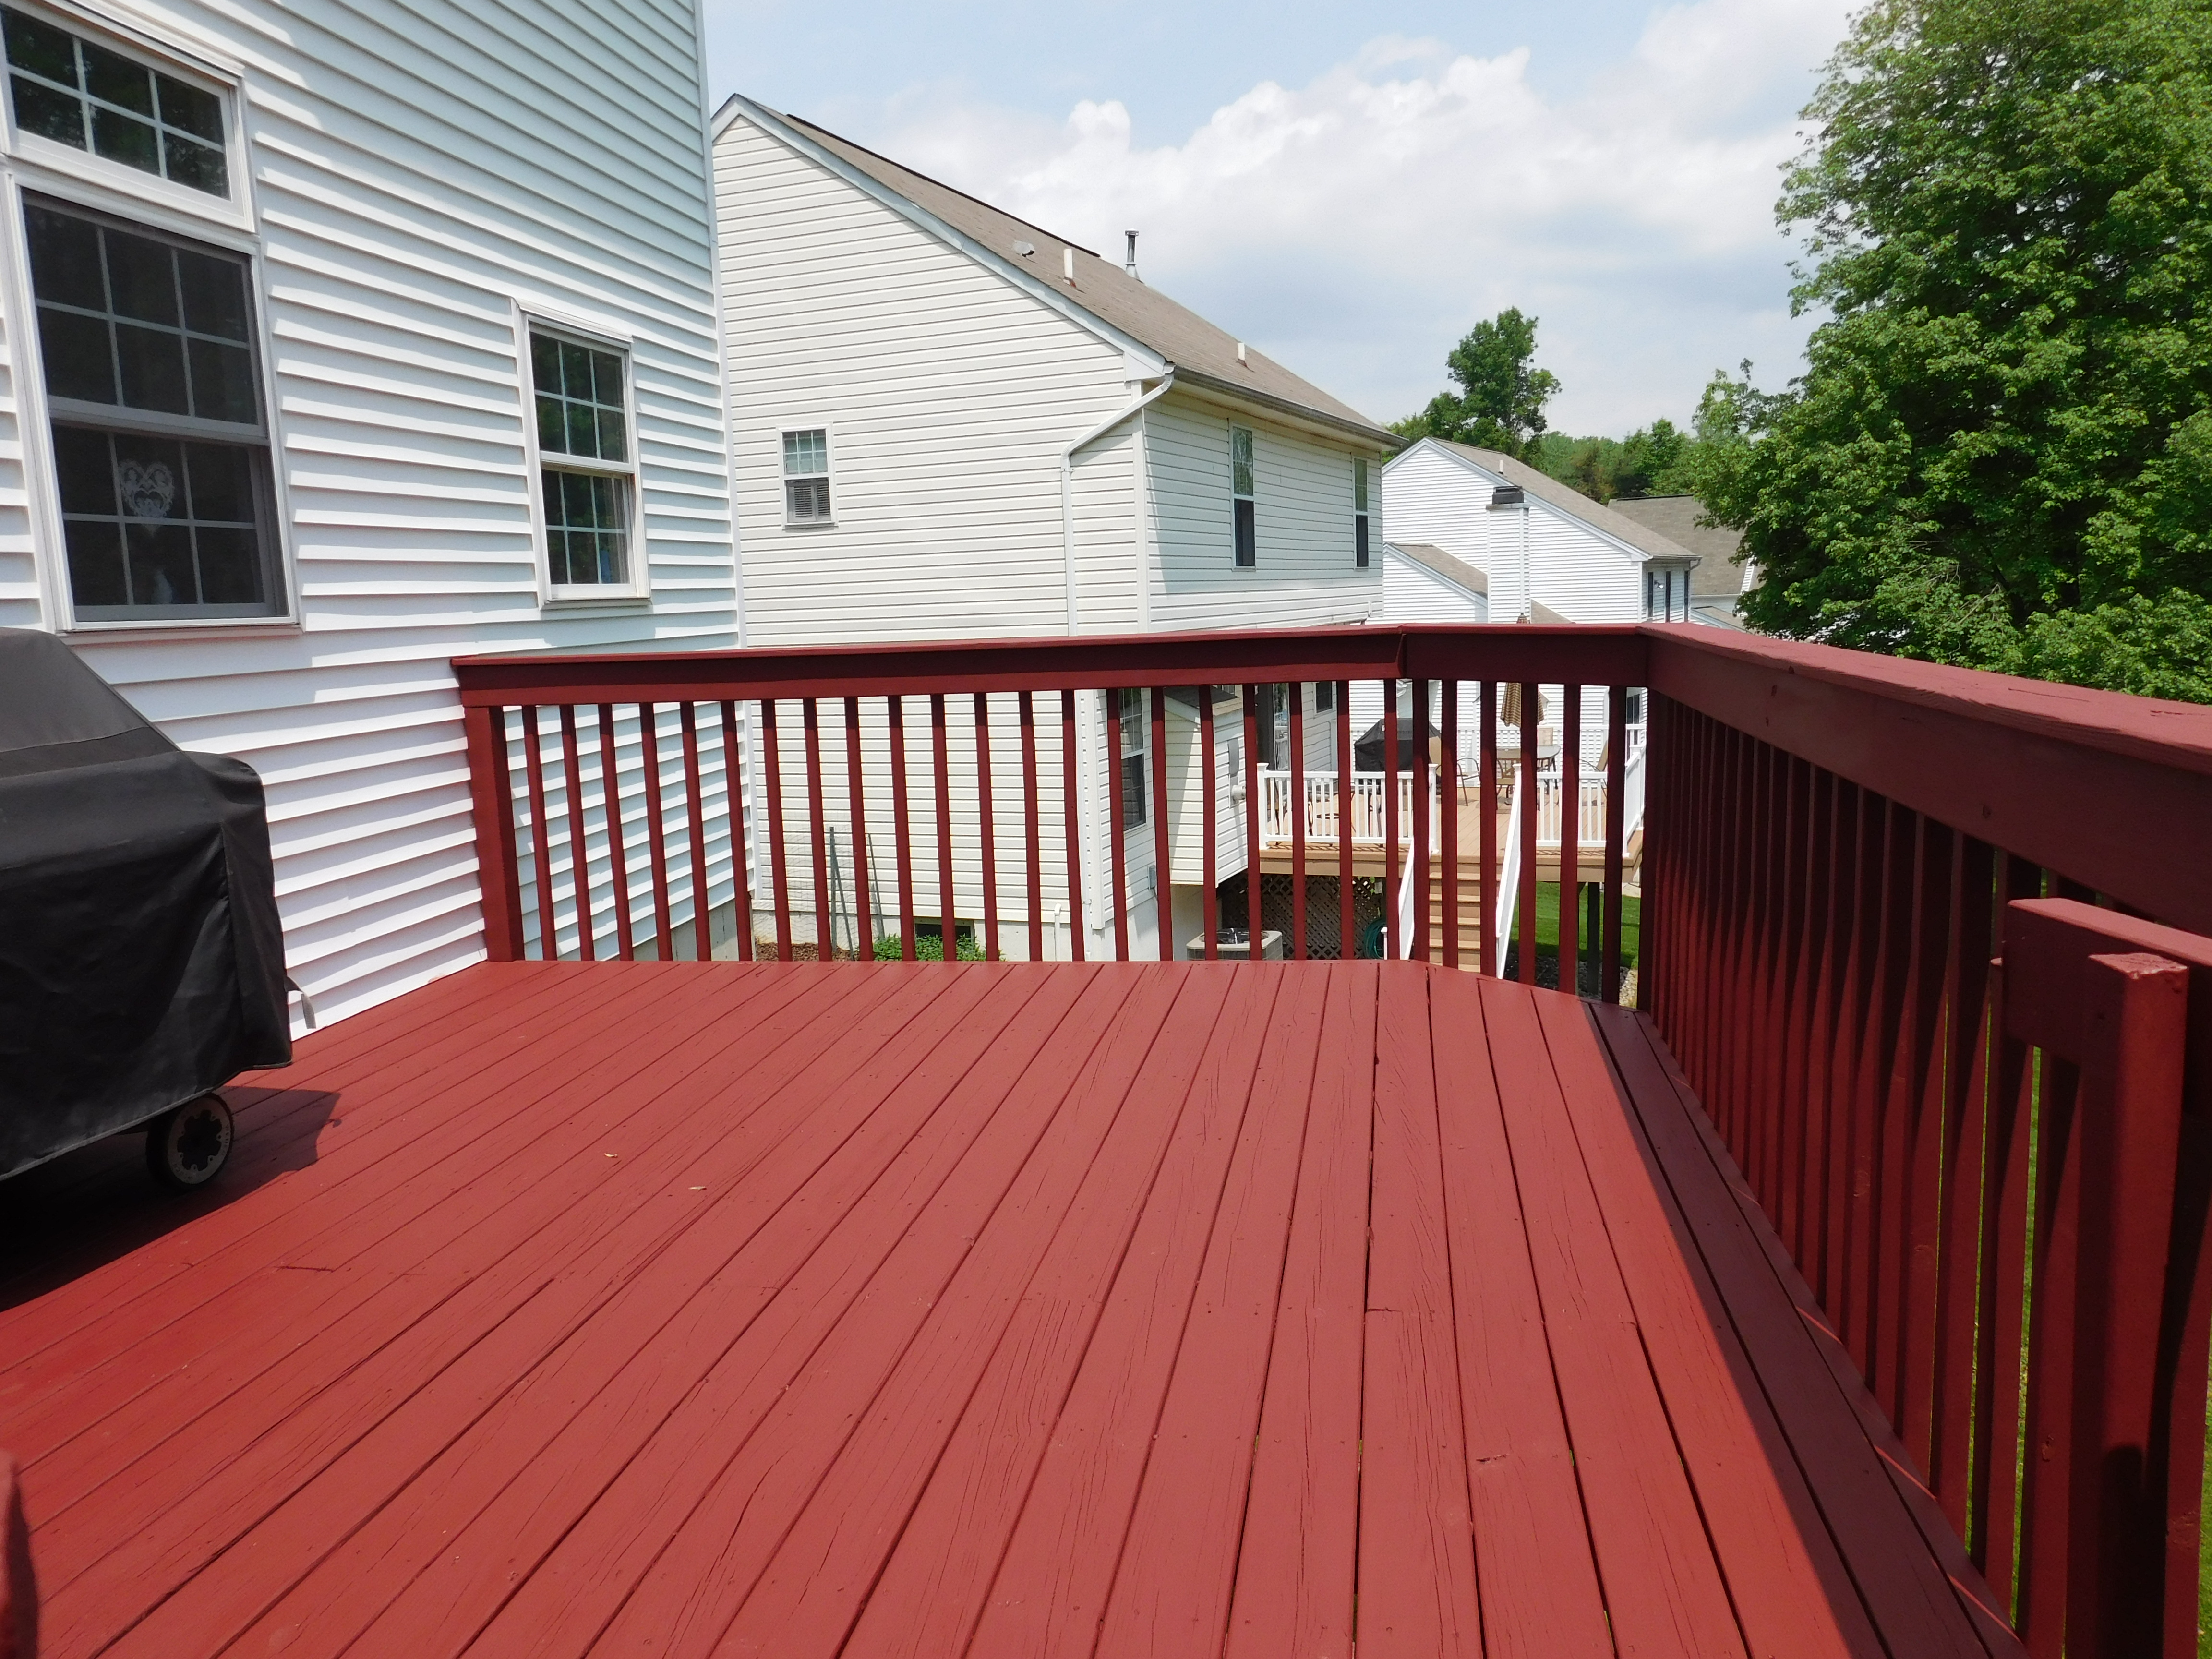 Deck staining downingtown deck sealing washing painting Classic red paint color